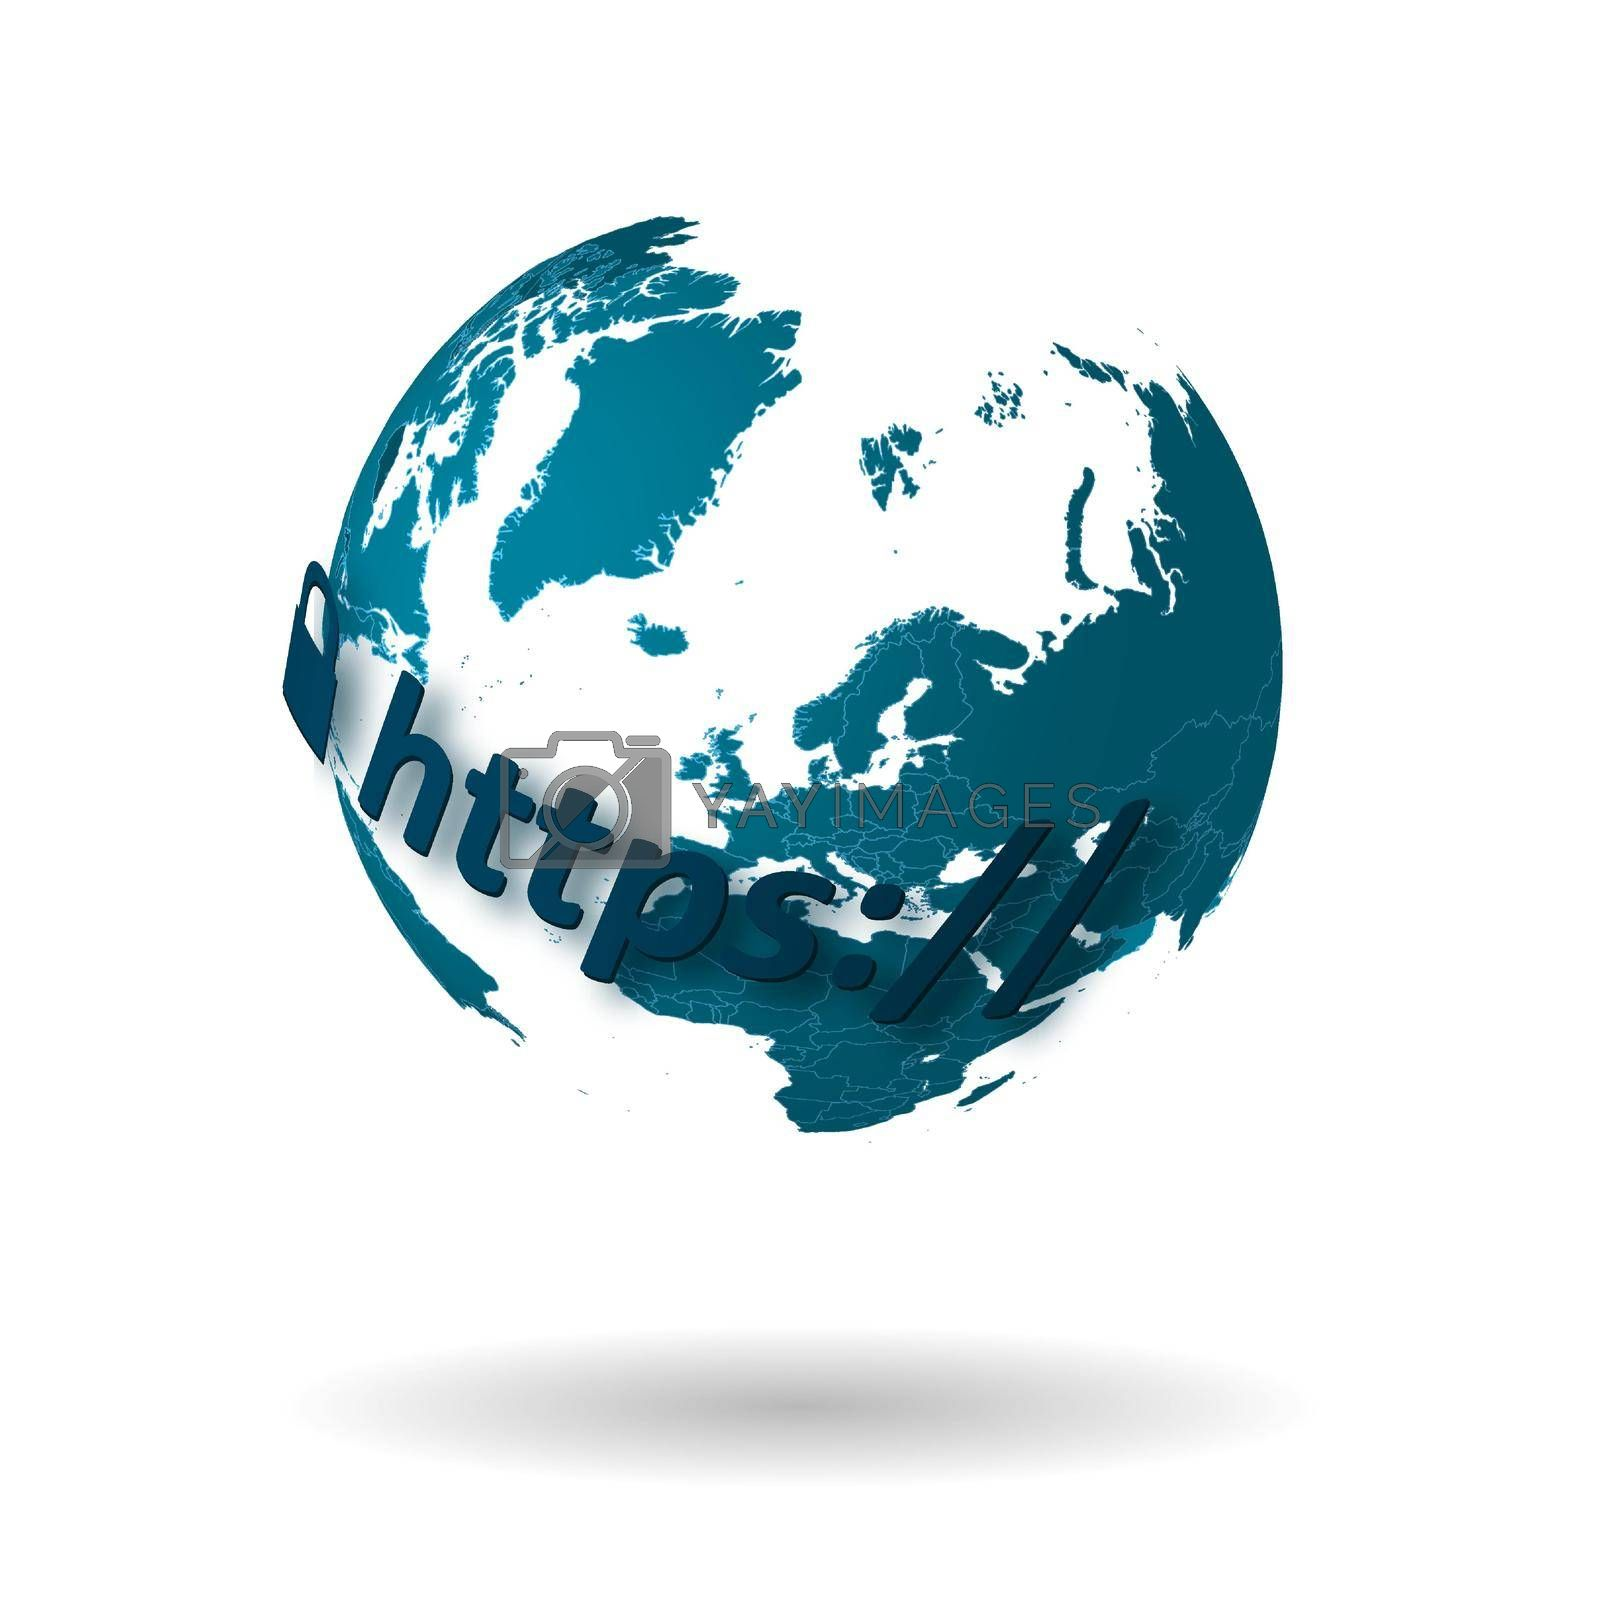 secure internet connection concept. Secure communication with encrypted traffic. Globe with continents on a white background. Vector